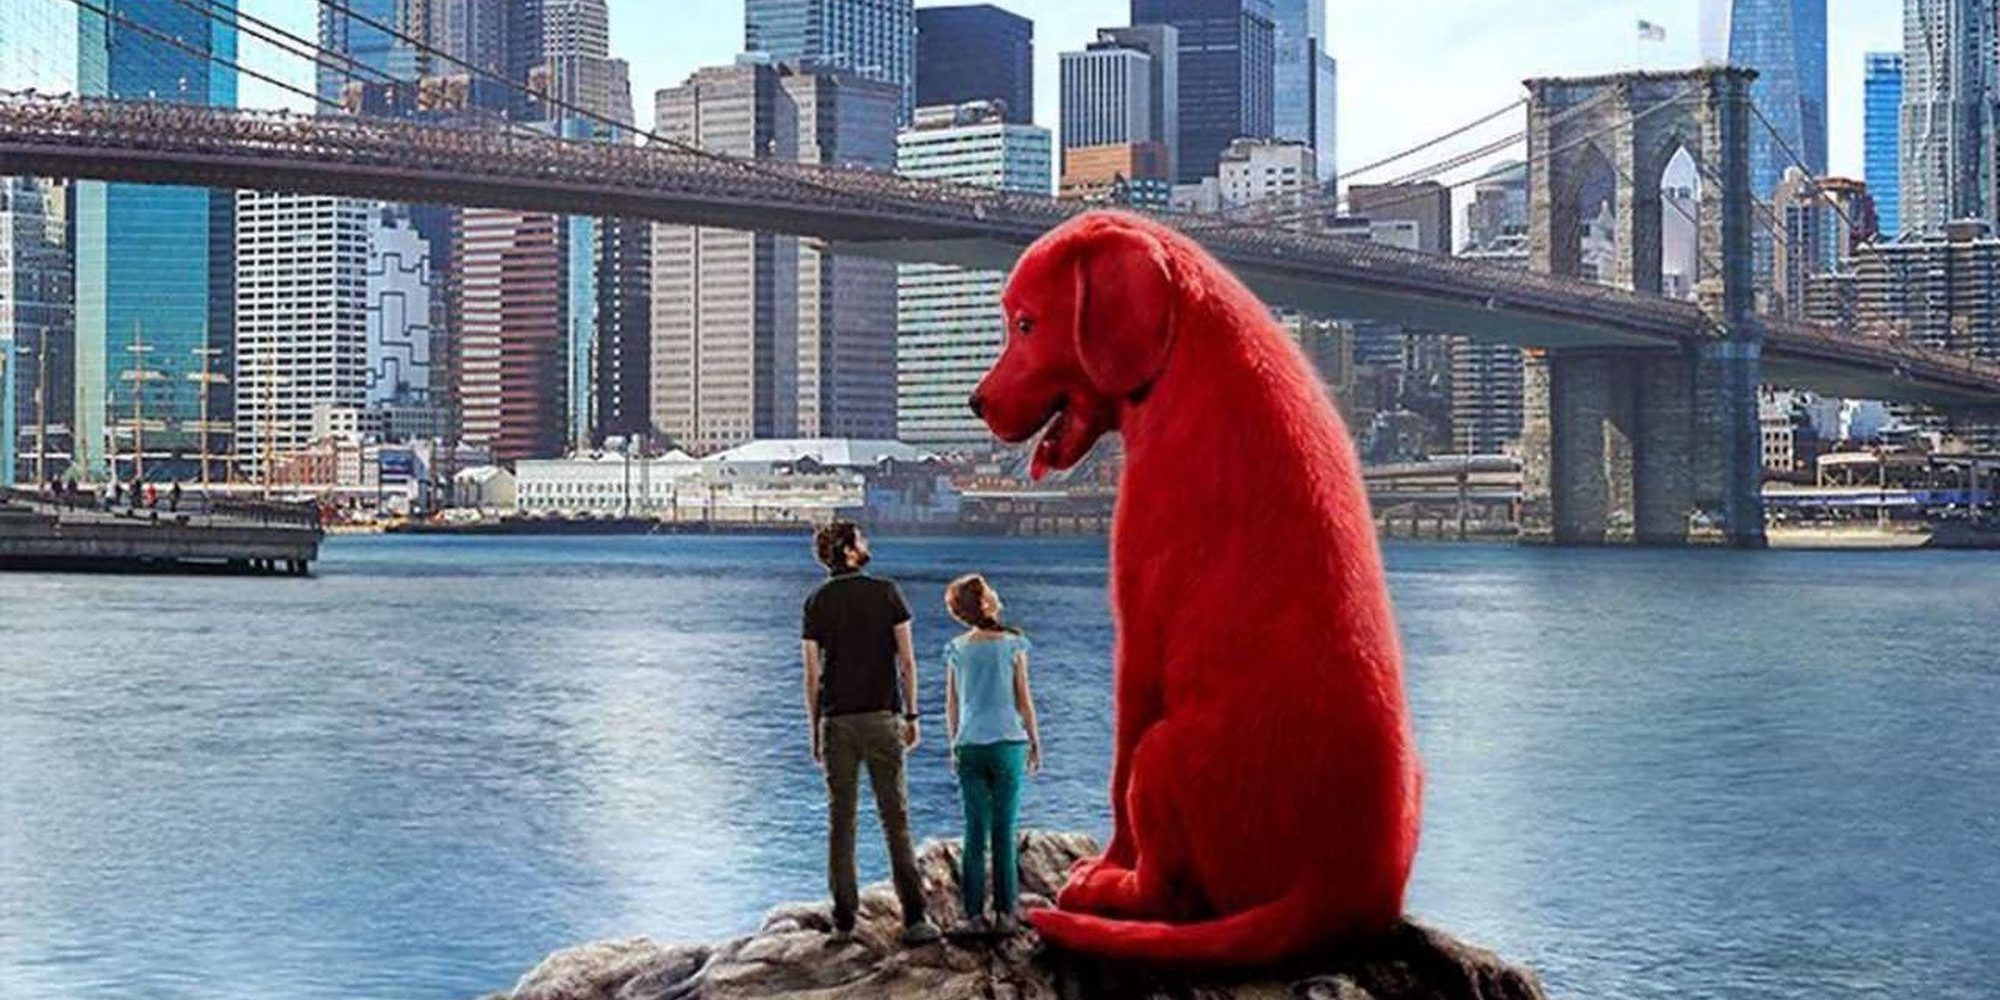 Clifford The Big Red Dog Replaces Godzilla In Hilarious Fan Video